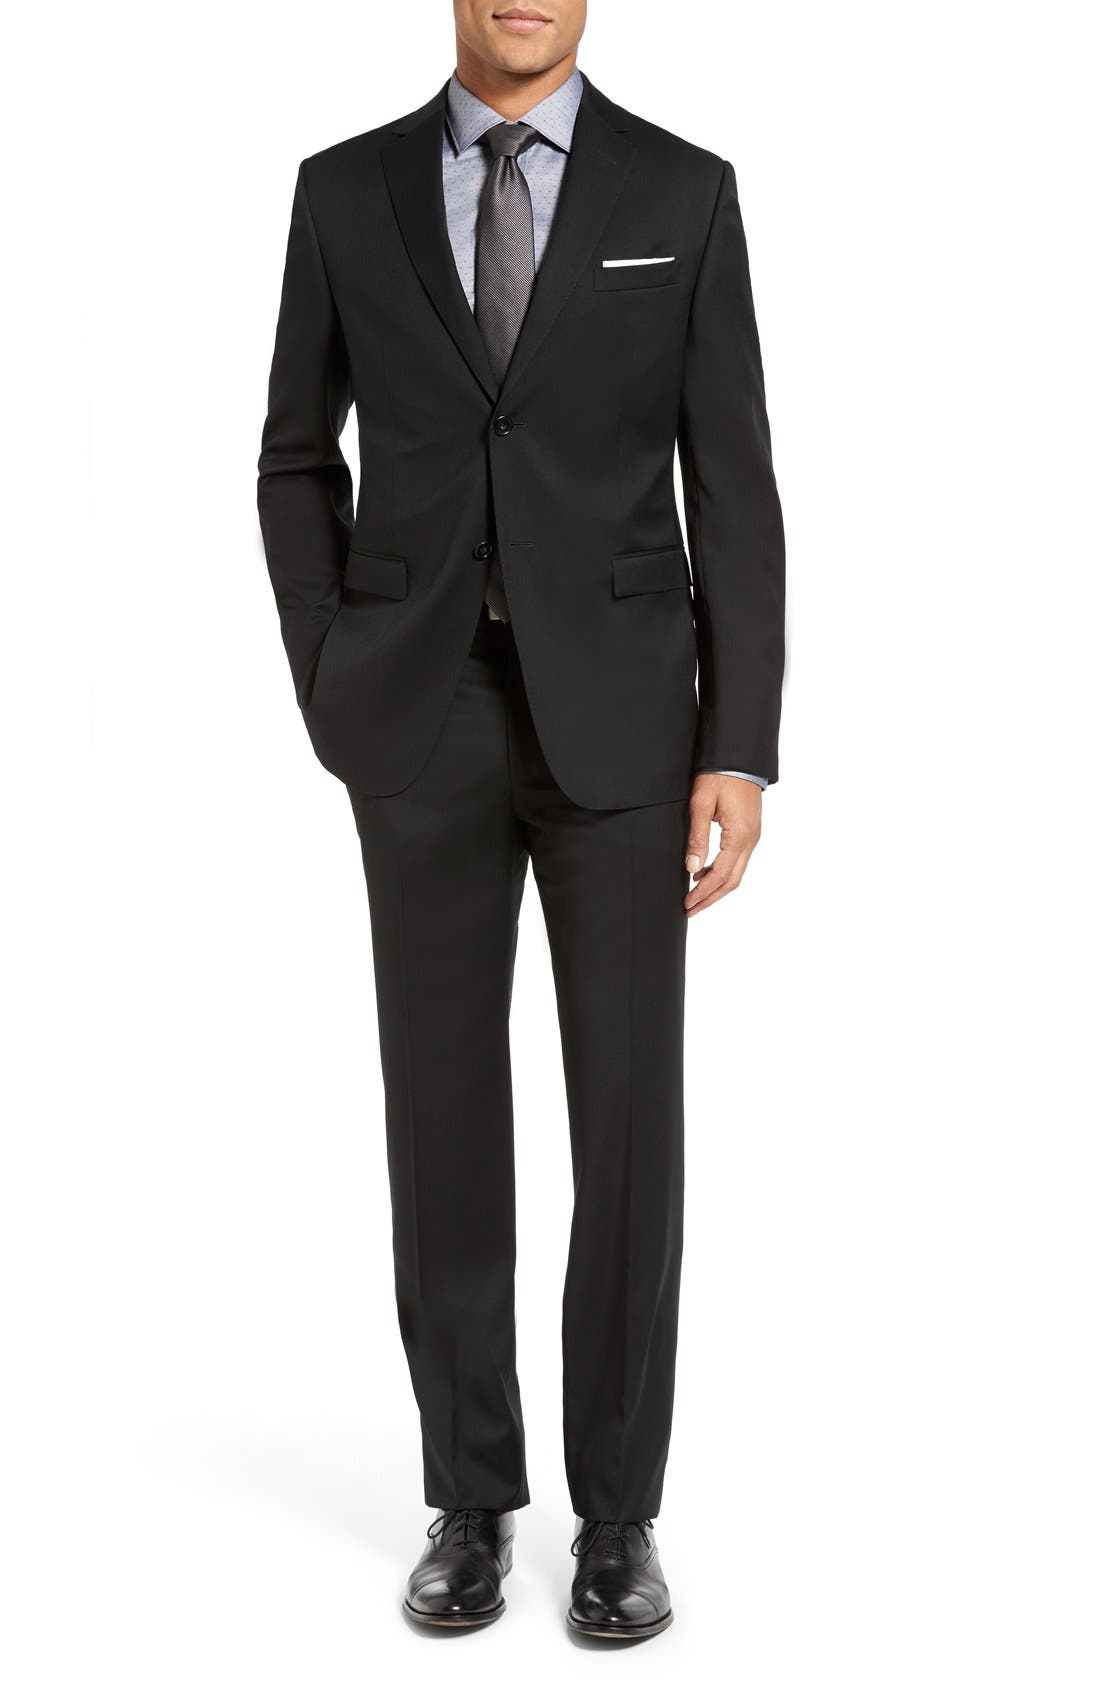 Main Image - Z Zegna Drop 7 Trim Fit Wool Suit